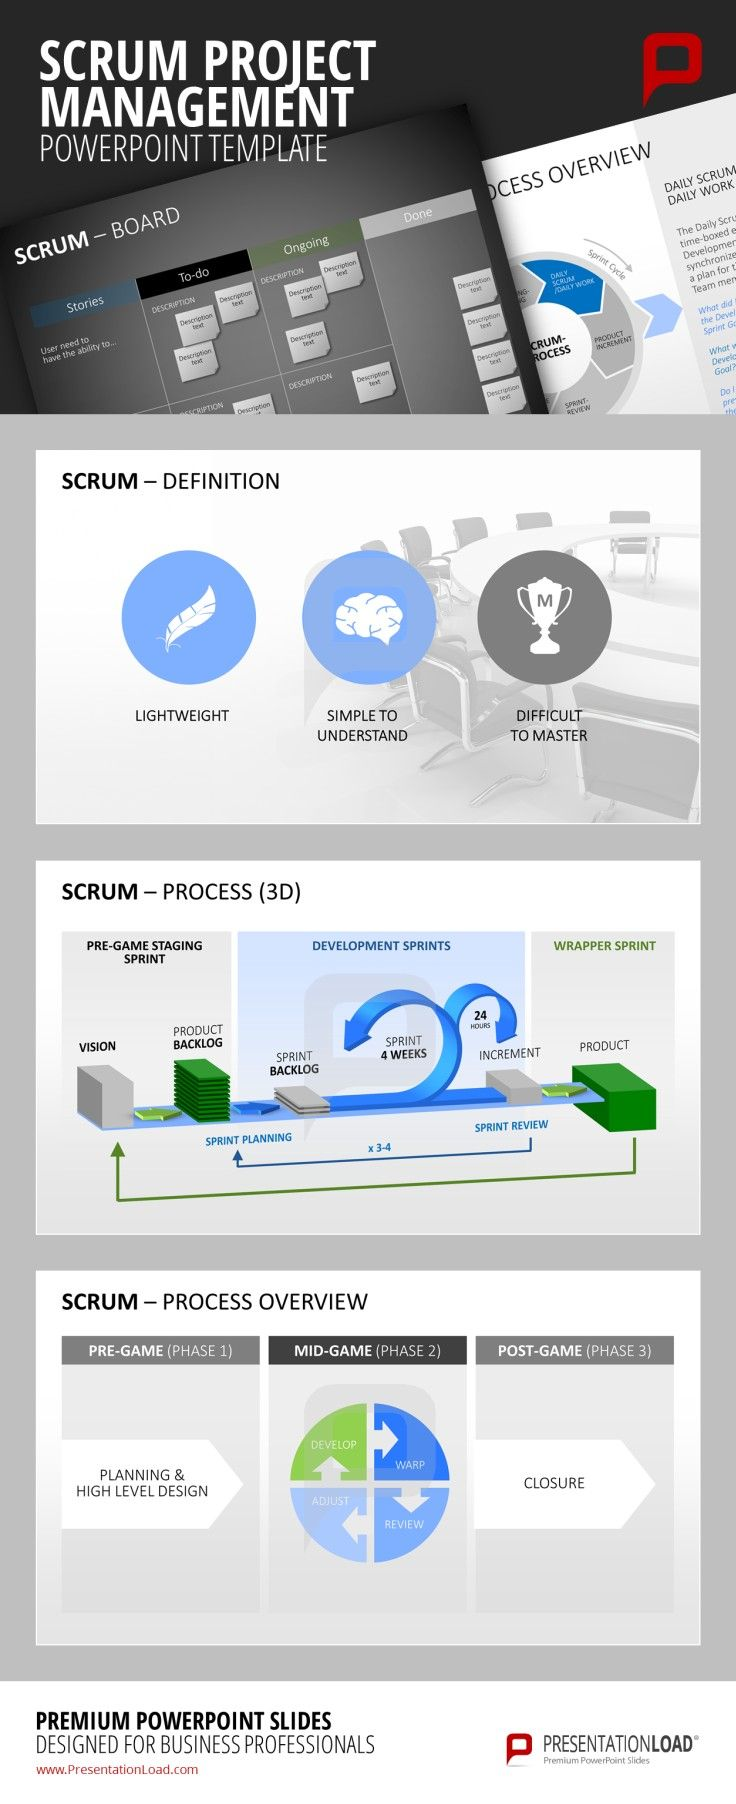 Scrum Project Management Powerpoint Templates #presentationload  Http://www.presentationload.com